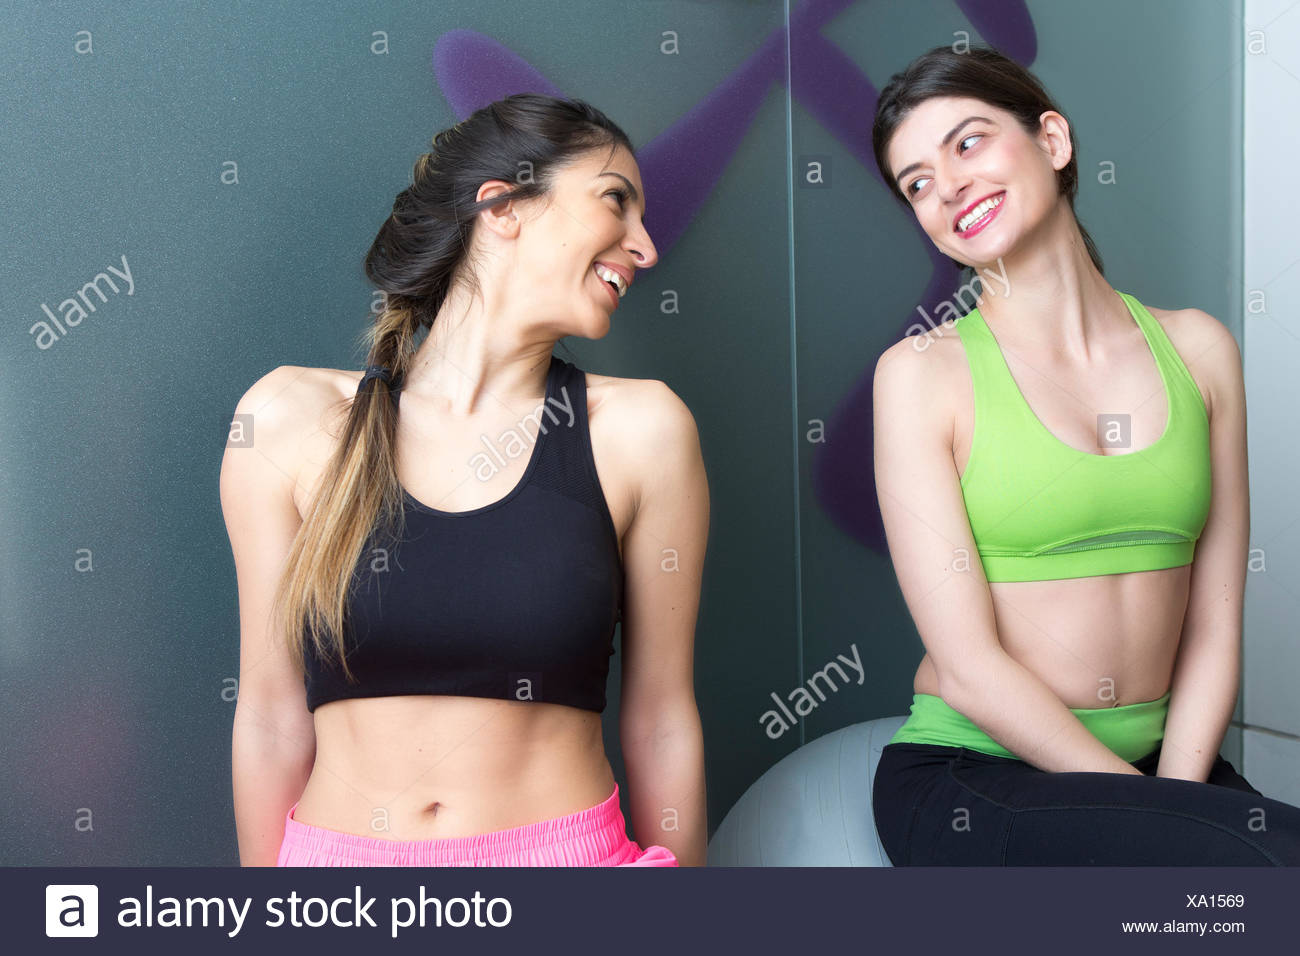 Two young women looking at each other and smiling in gym - Stock Image